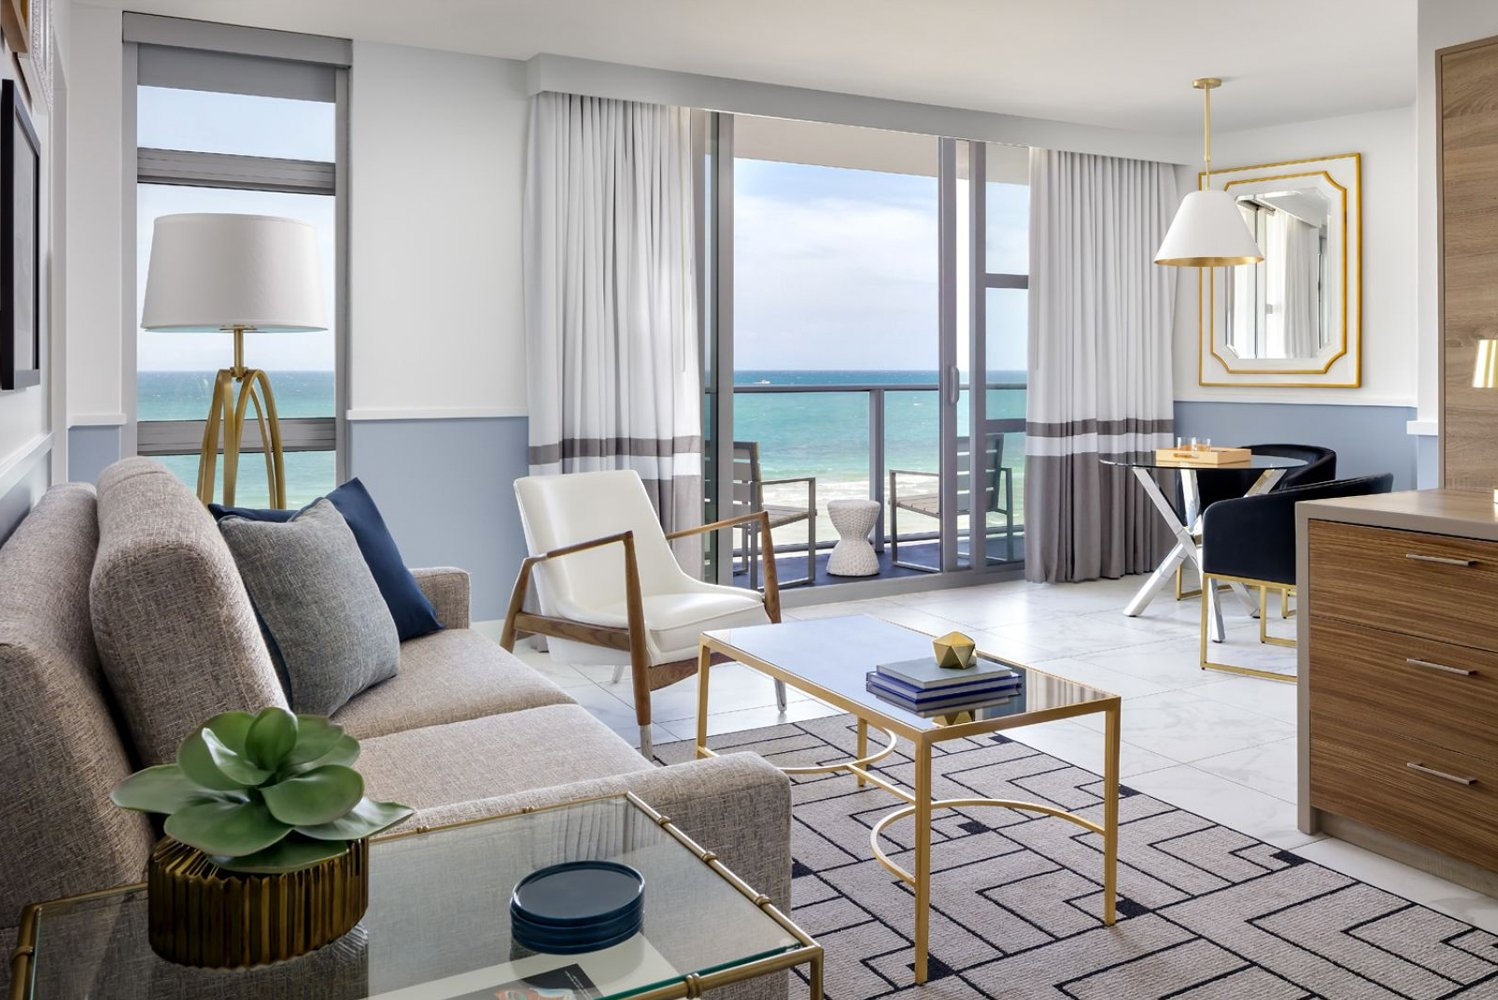 The 10 Most Sustainable Hotels in Miami, Florida